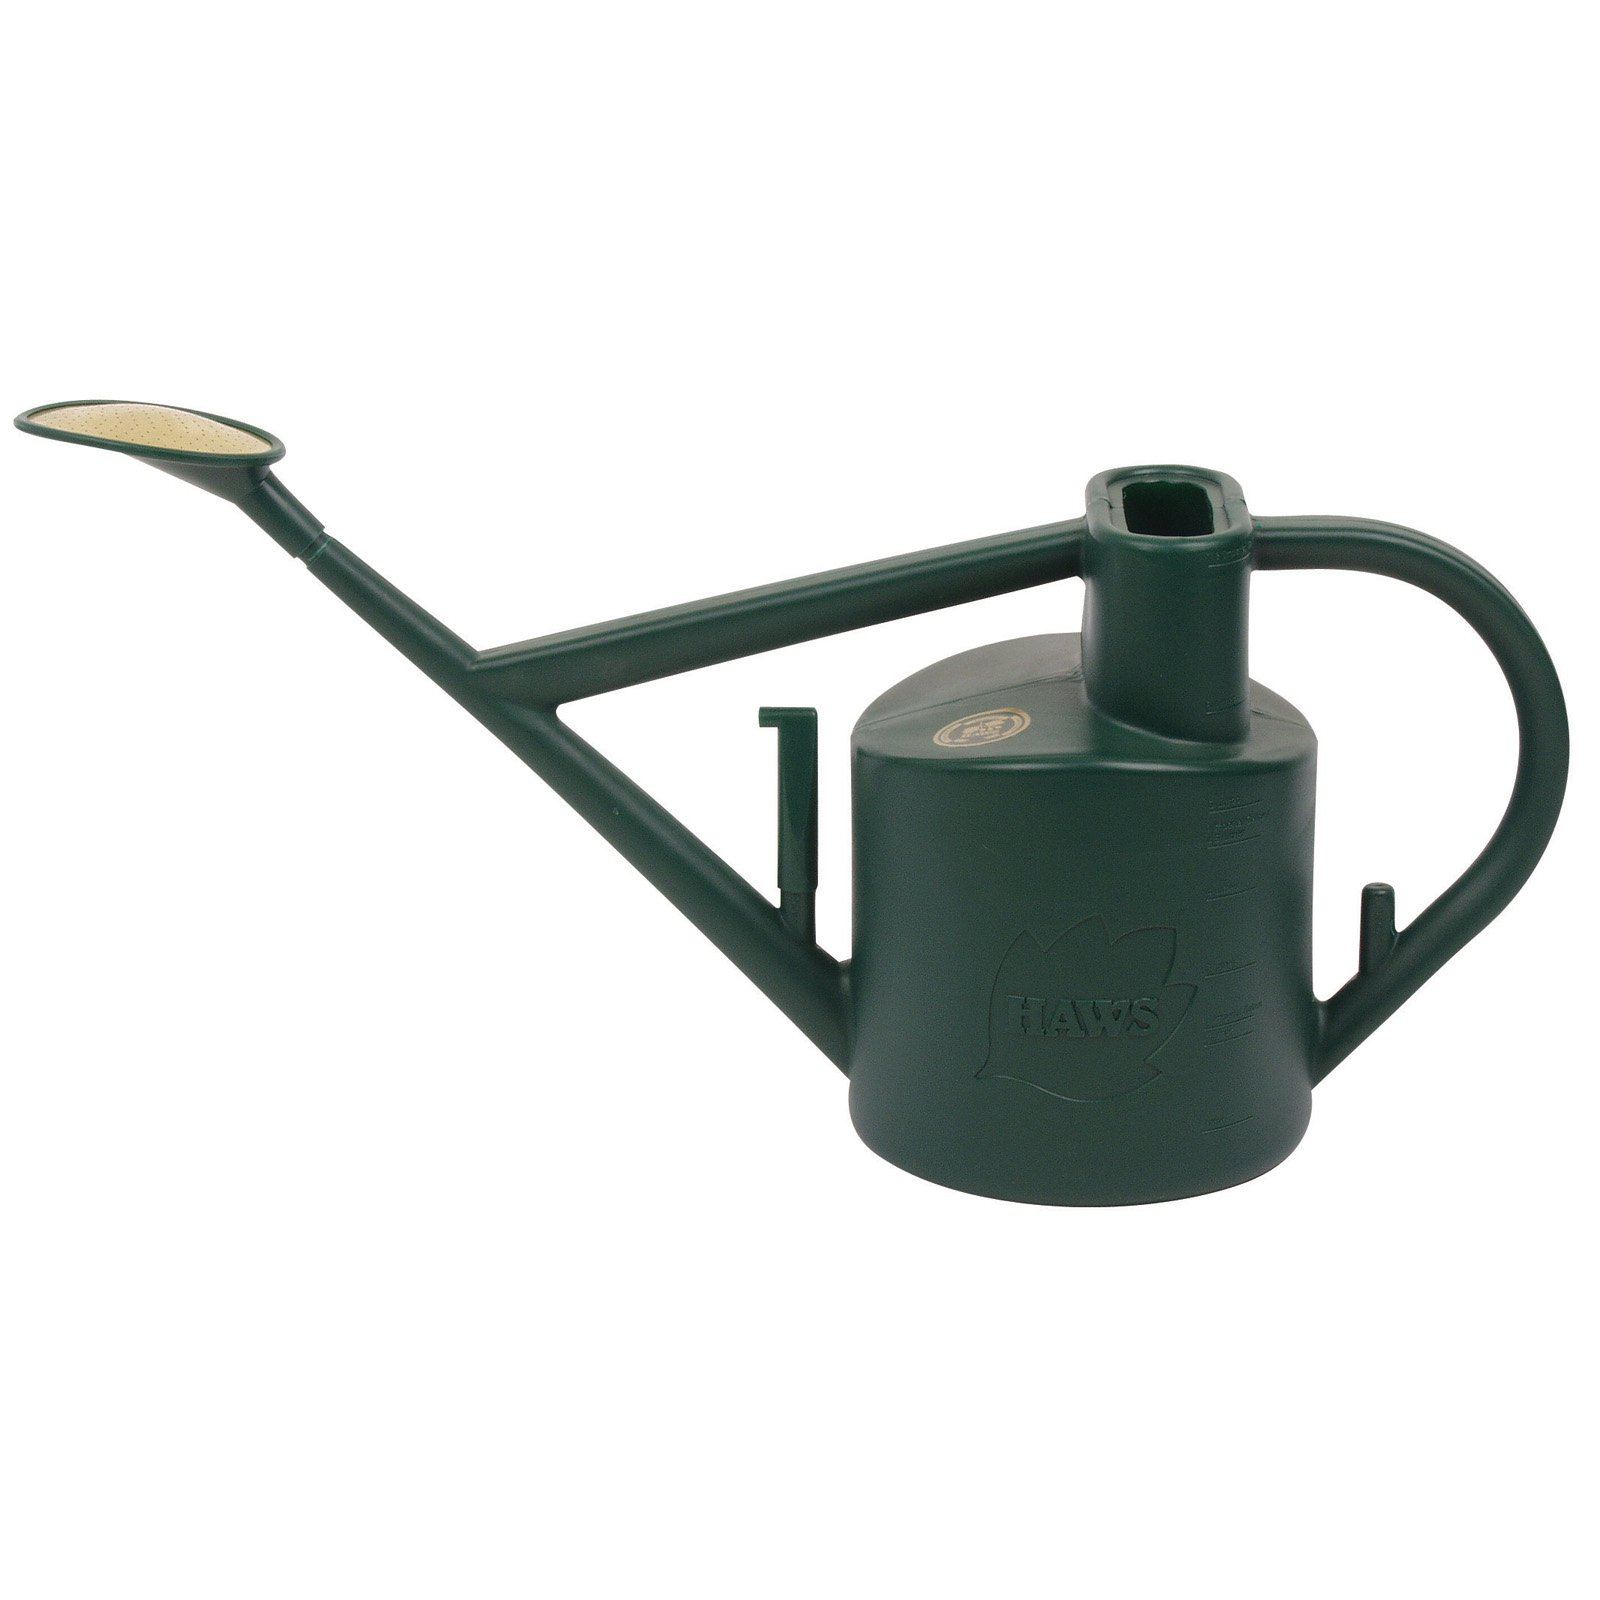 Haws 6 Liters Plastic Green Practican Outdoor Watering Can by Bosmere Inc